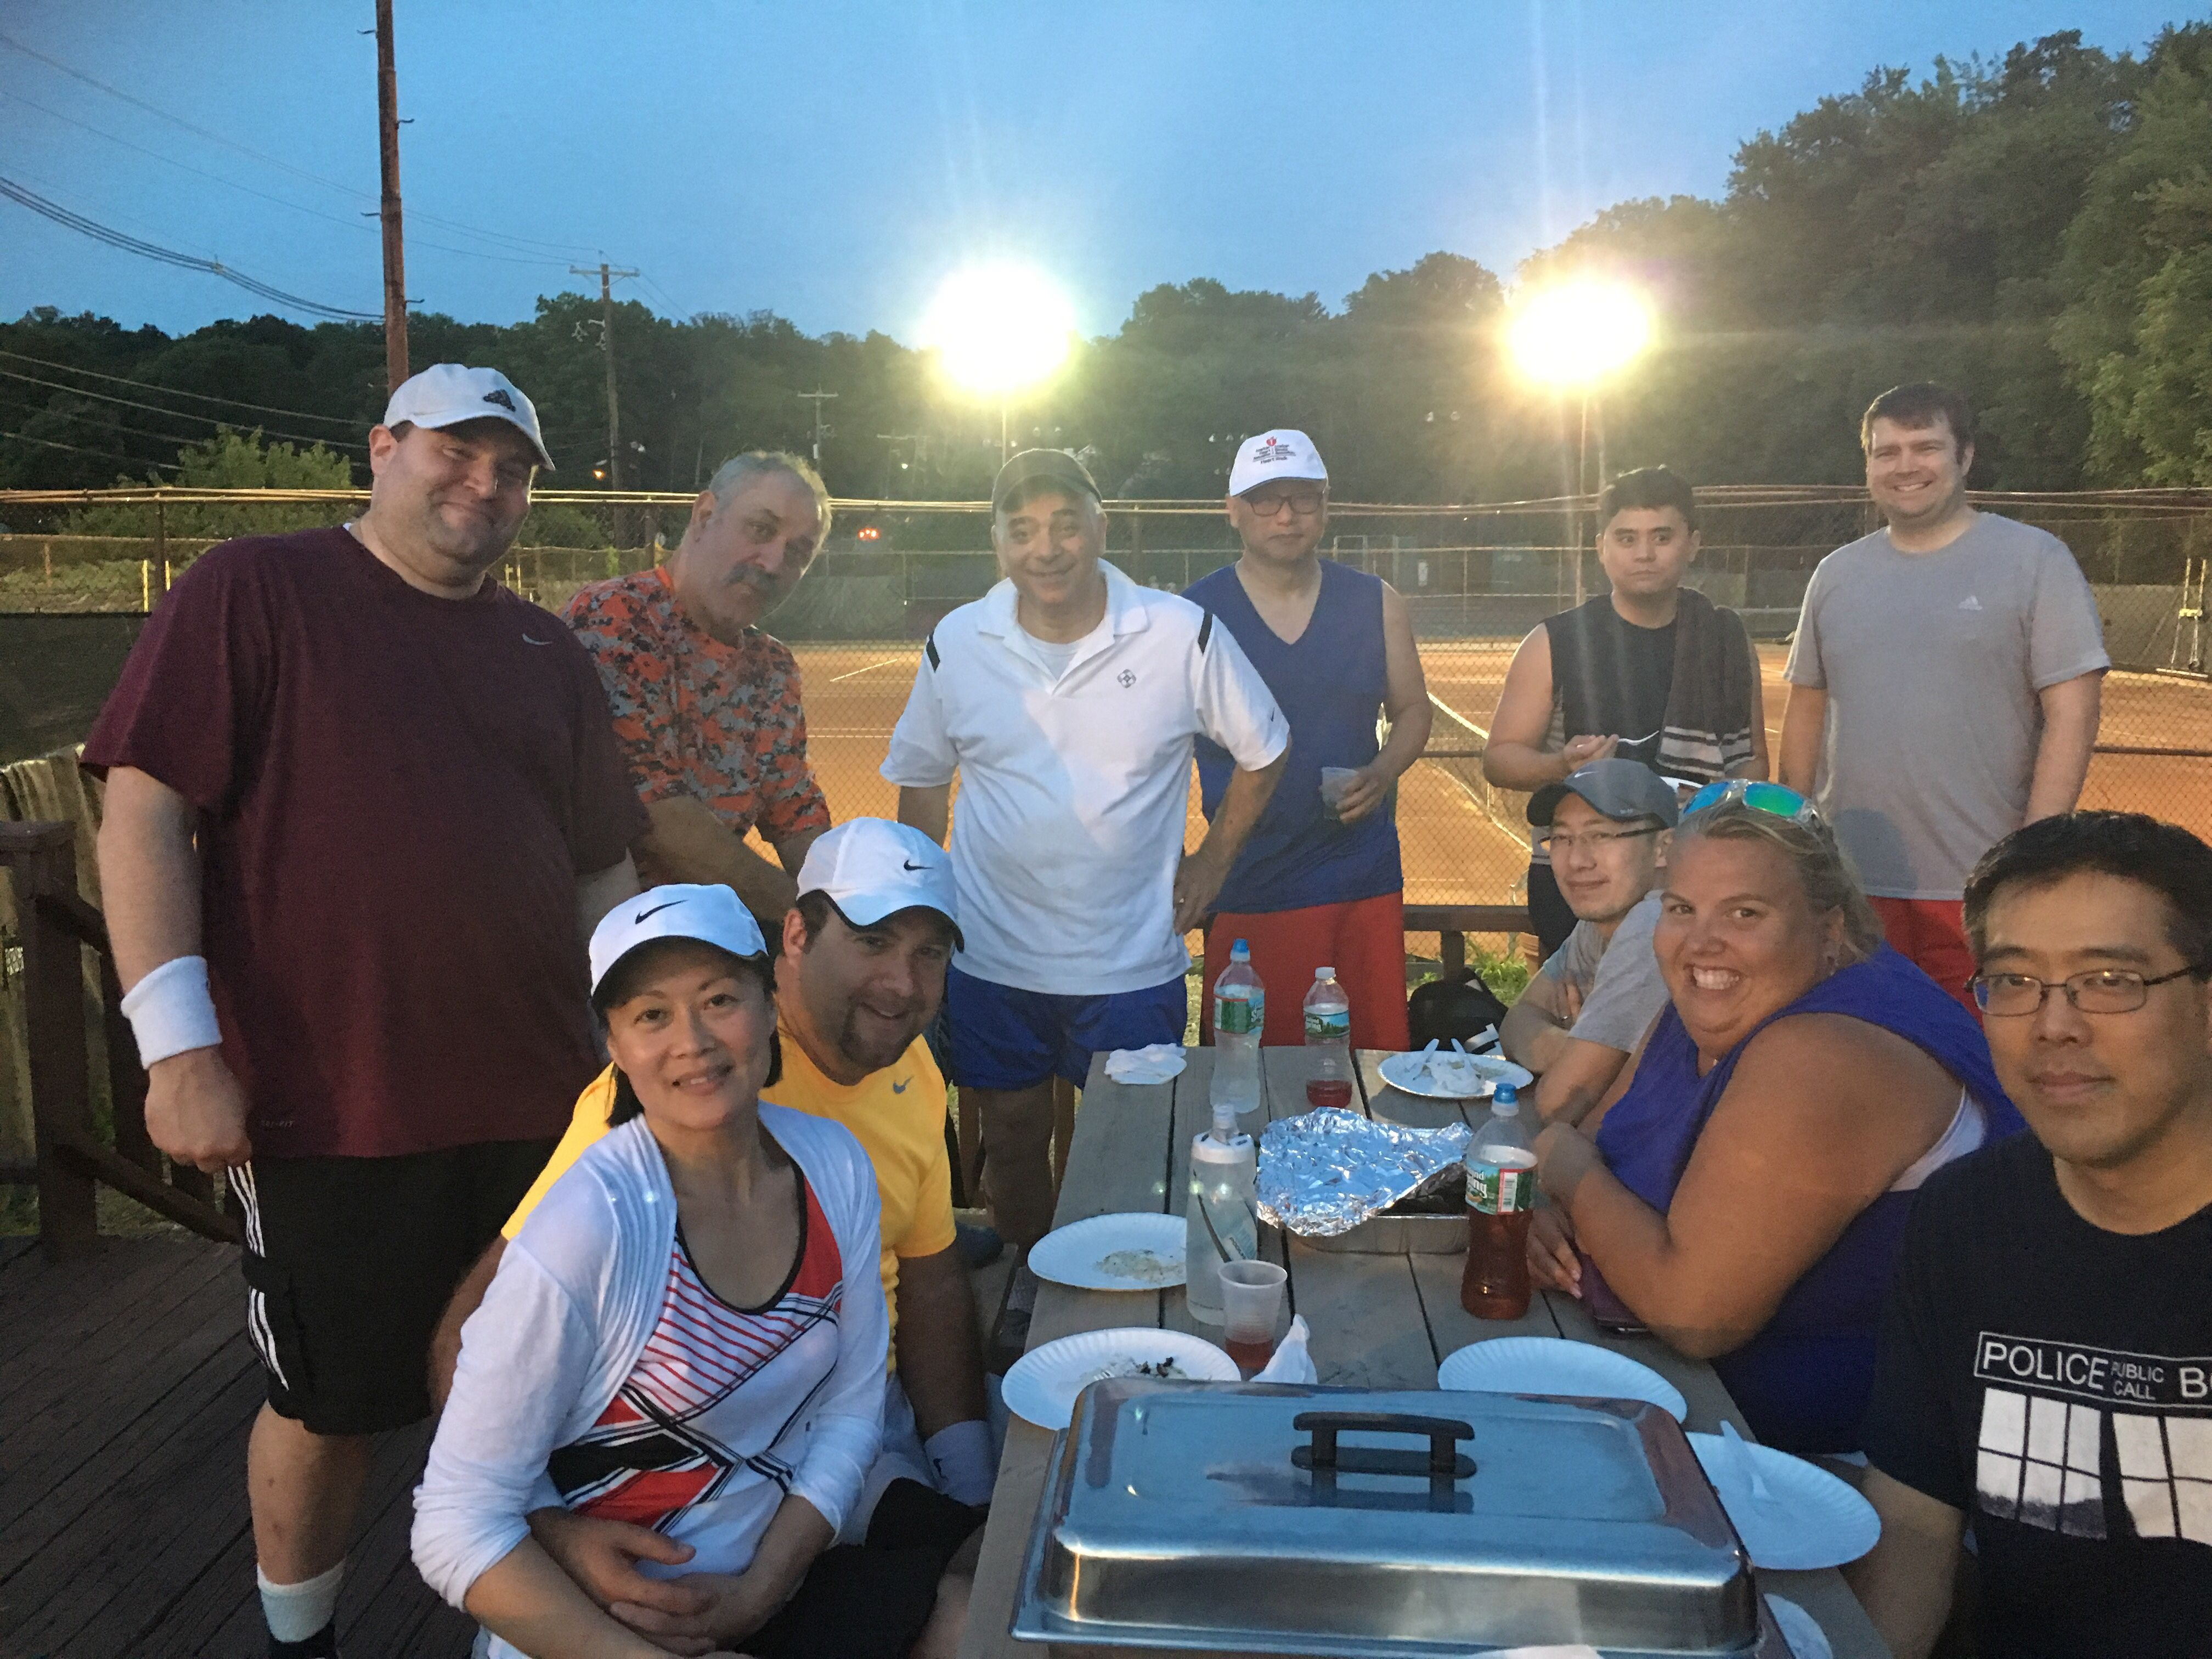 Tennis Buffs Meetup Group